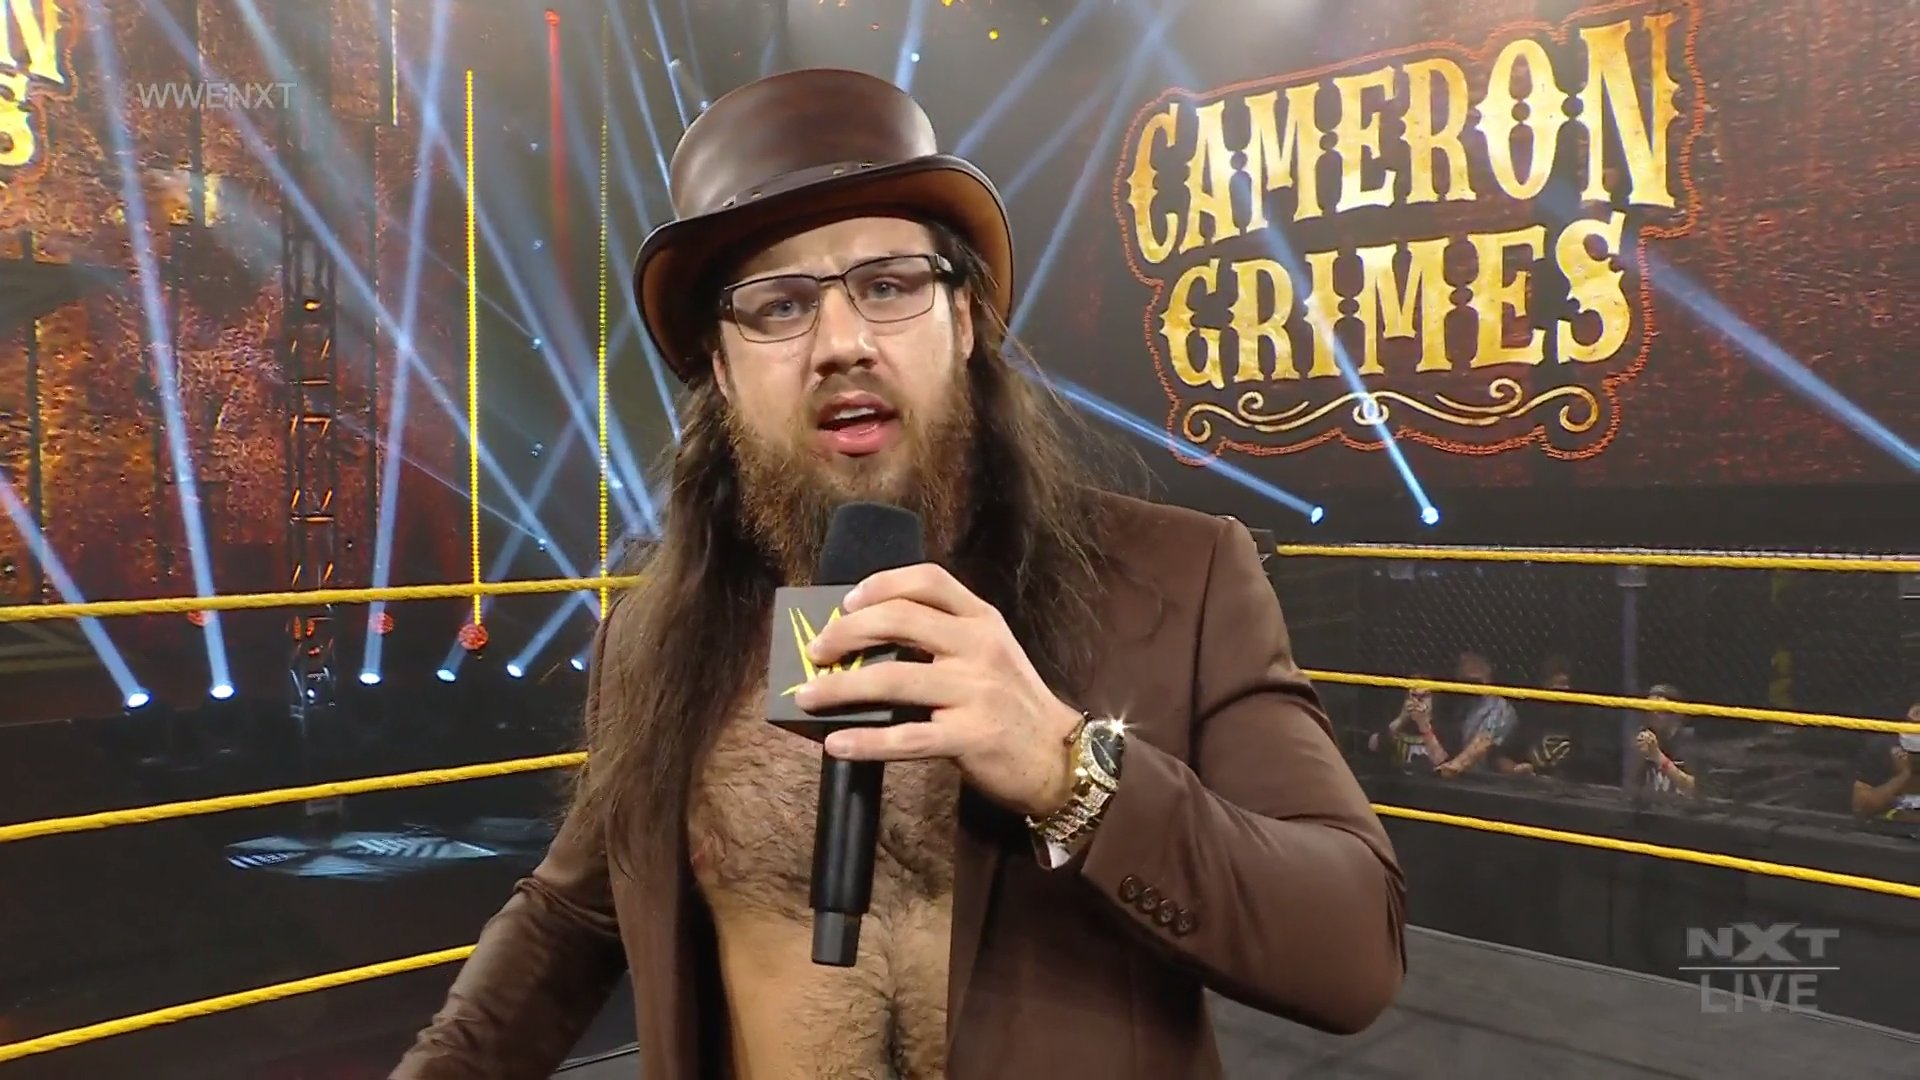 Video: Cameron Grimes returns to NXT with a new gimmick? – WWE Sports – Jioforme